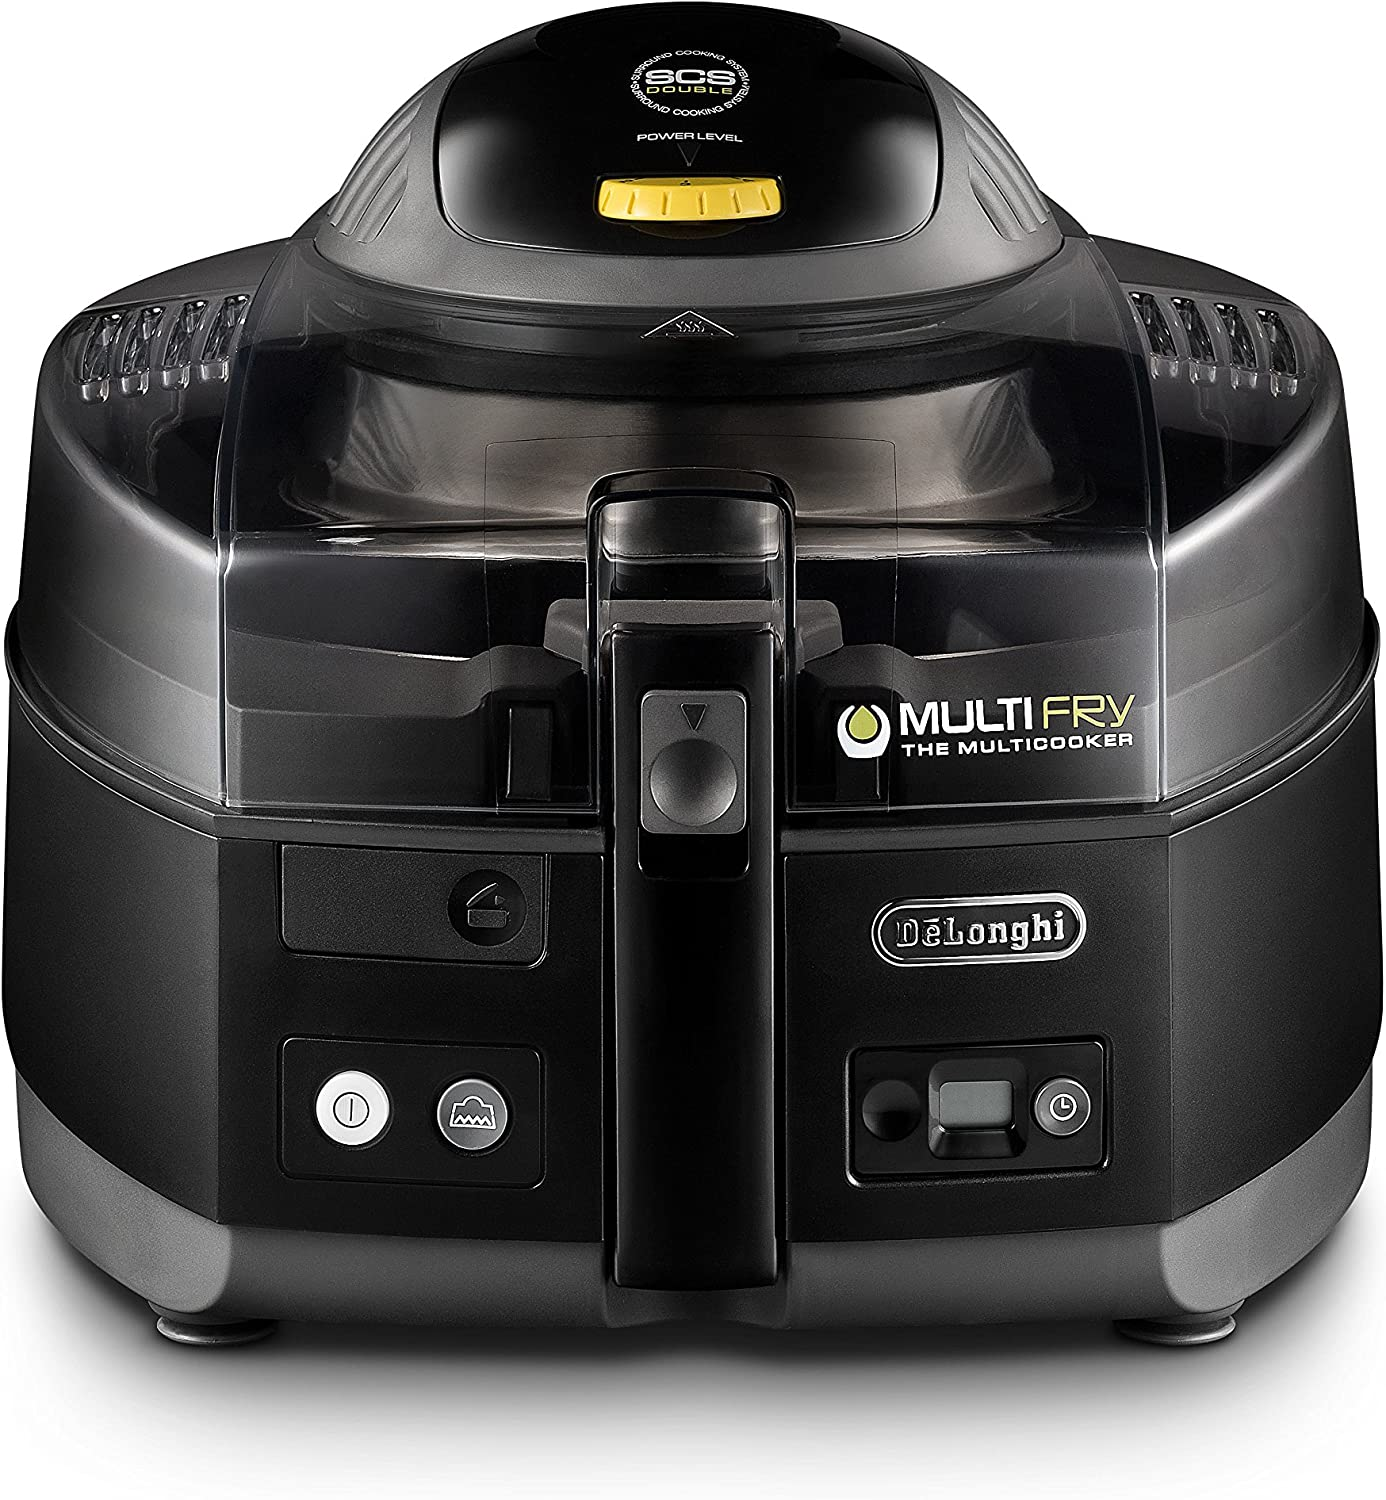 DeLonghi 125392006 De'Longhi FH1163 MultiFry, air fryer and Multi Cooker, Black